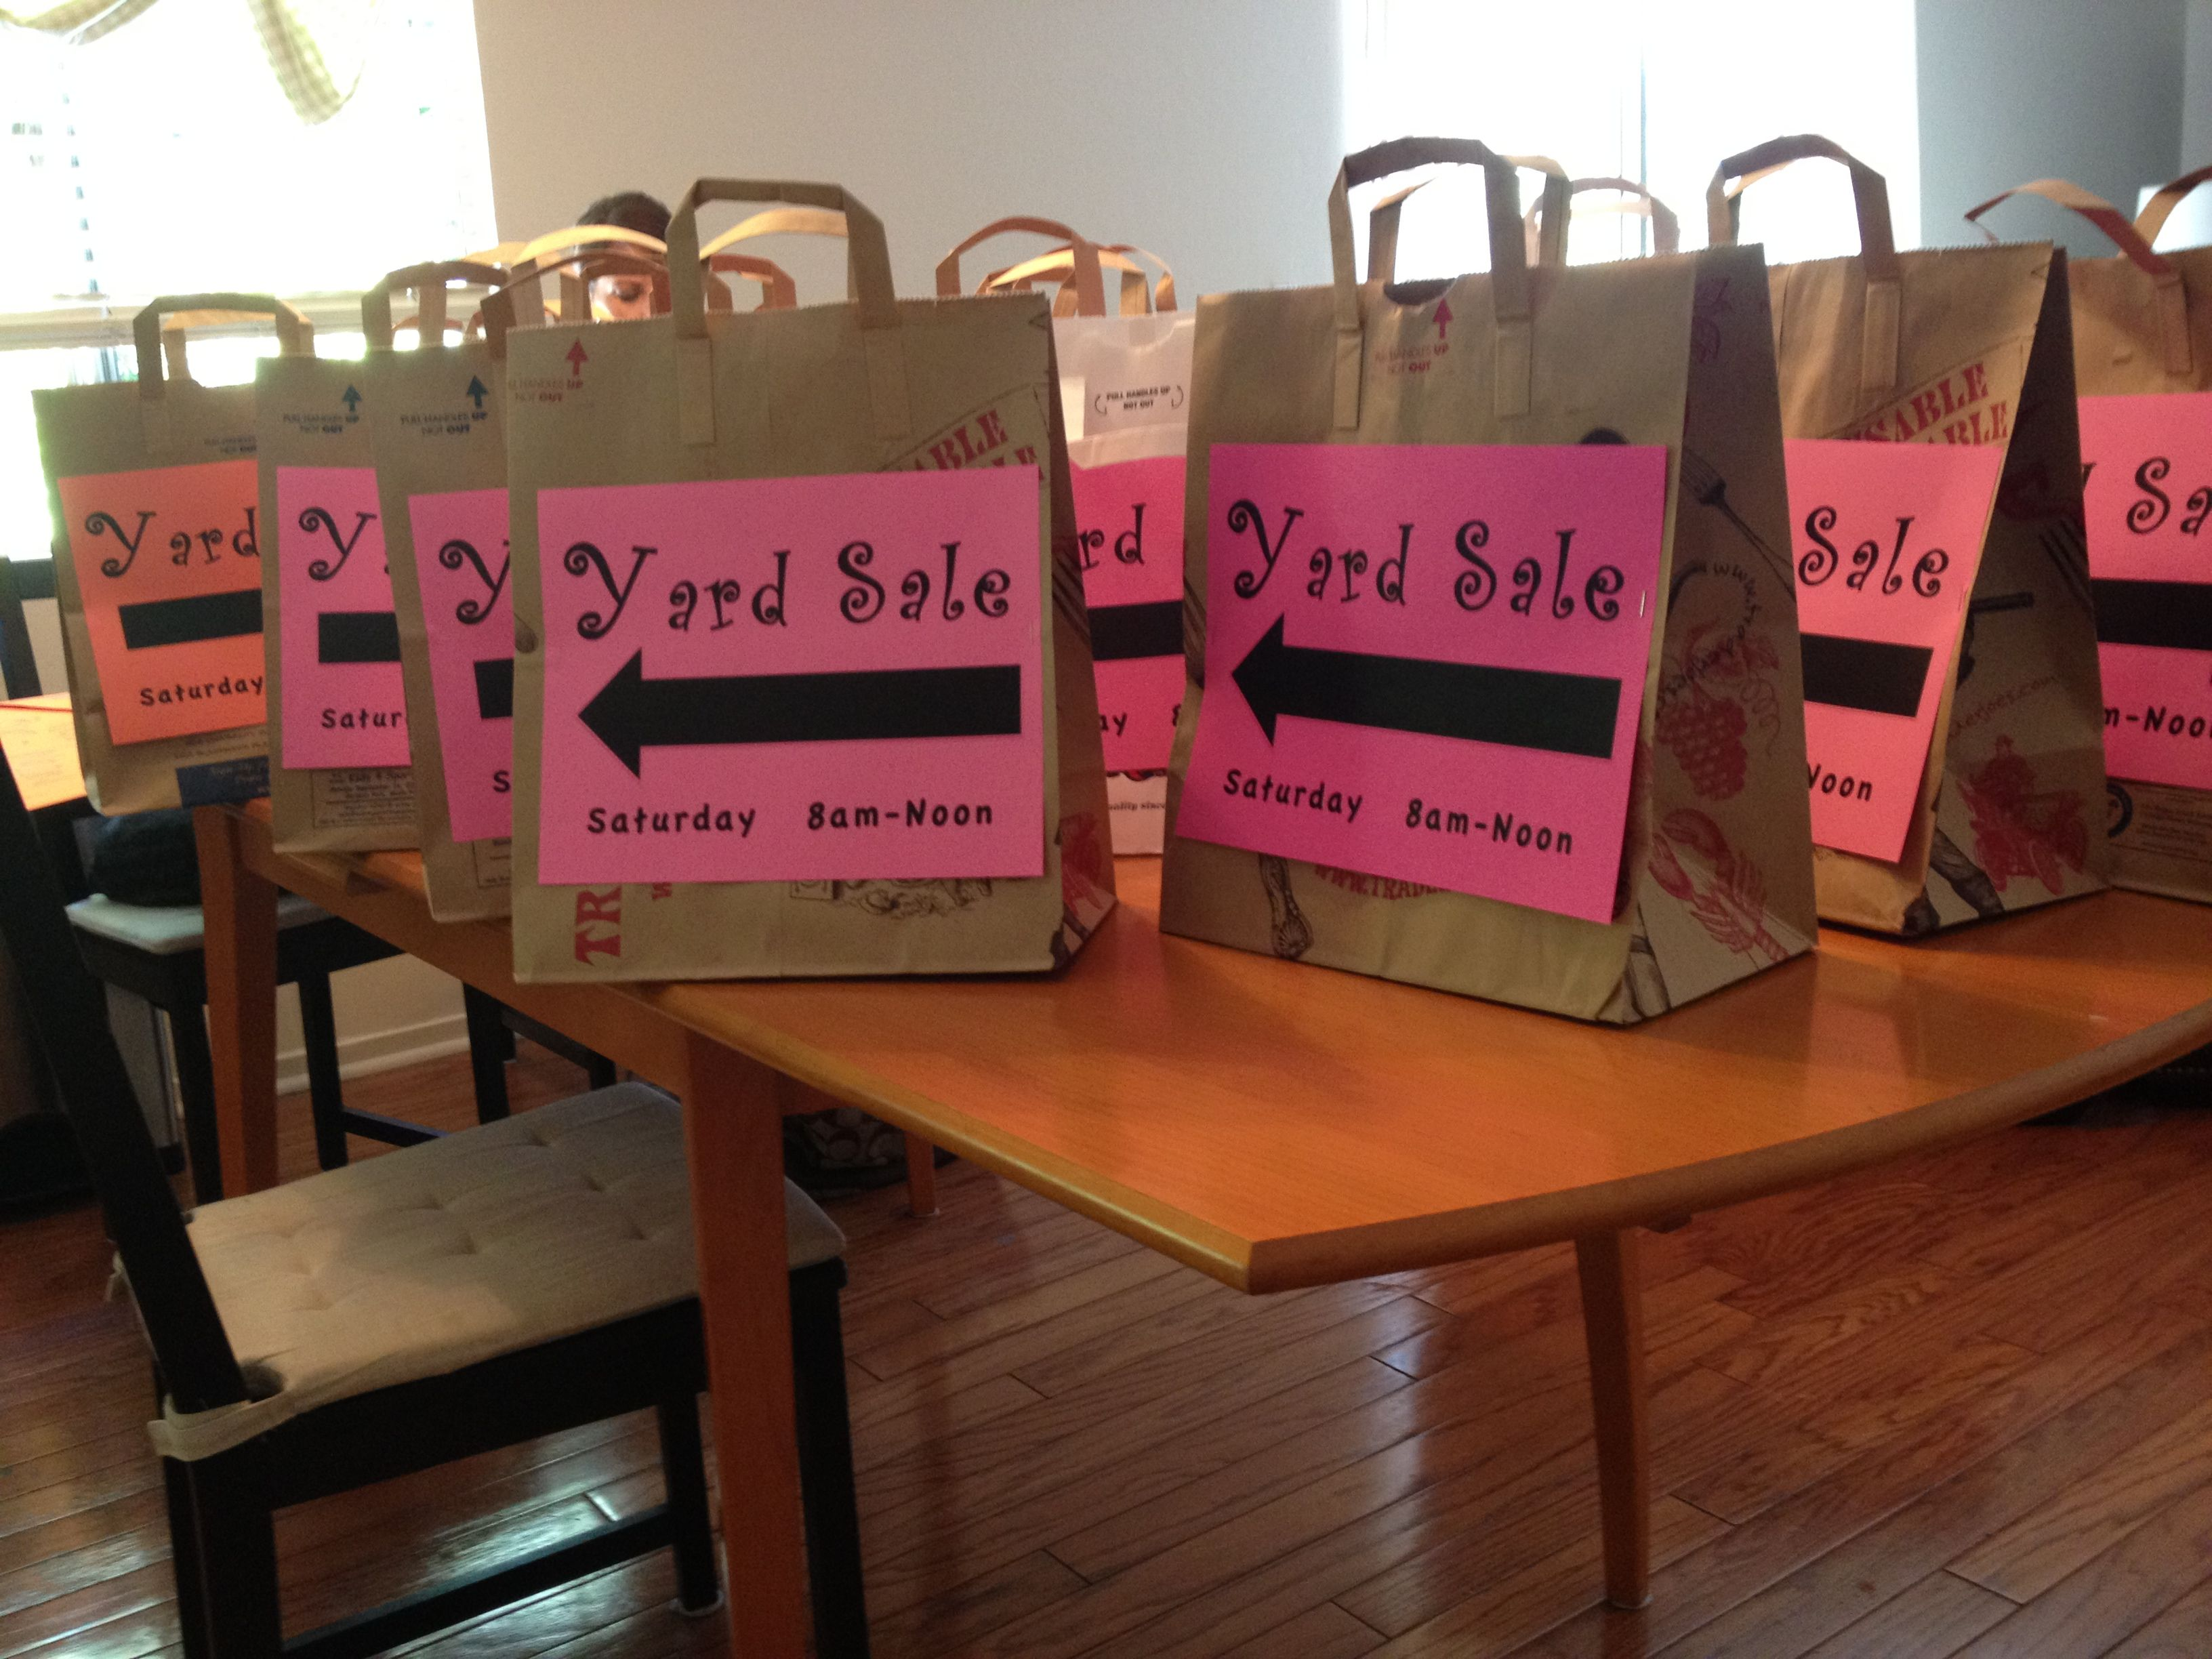 Cute idea for yard sale advertising fun projects